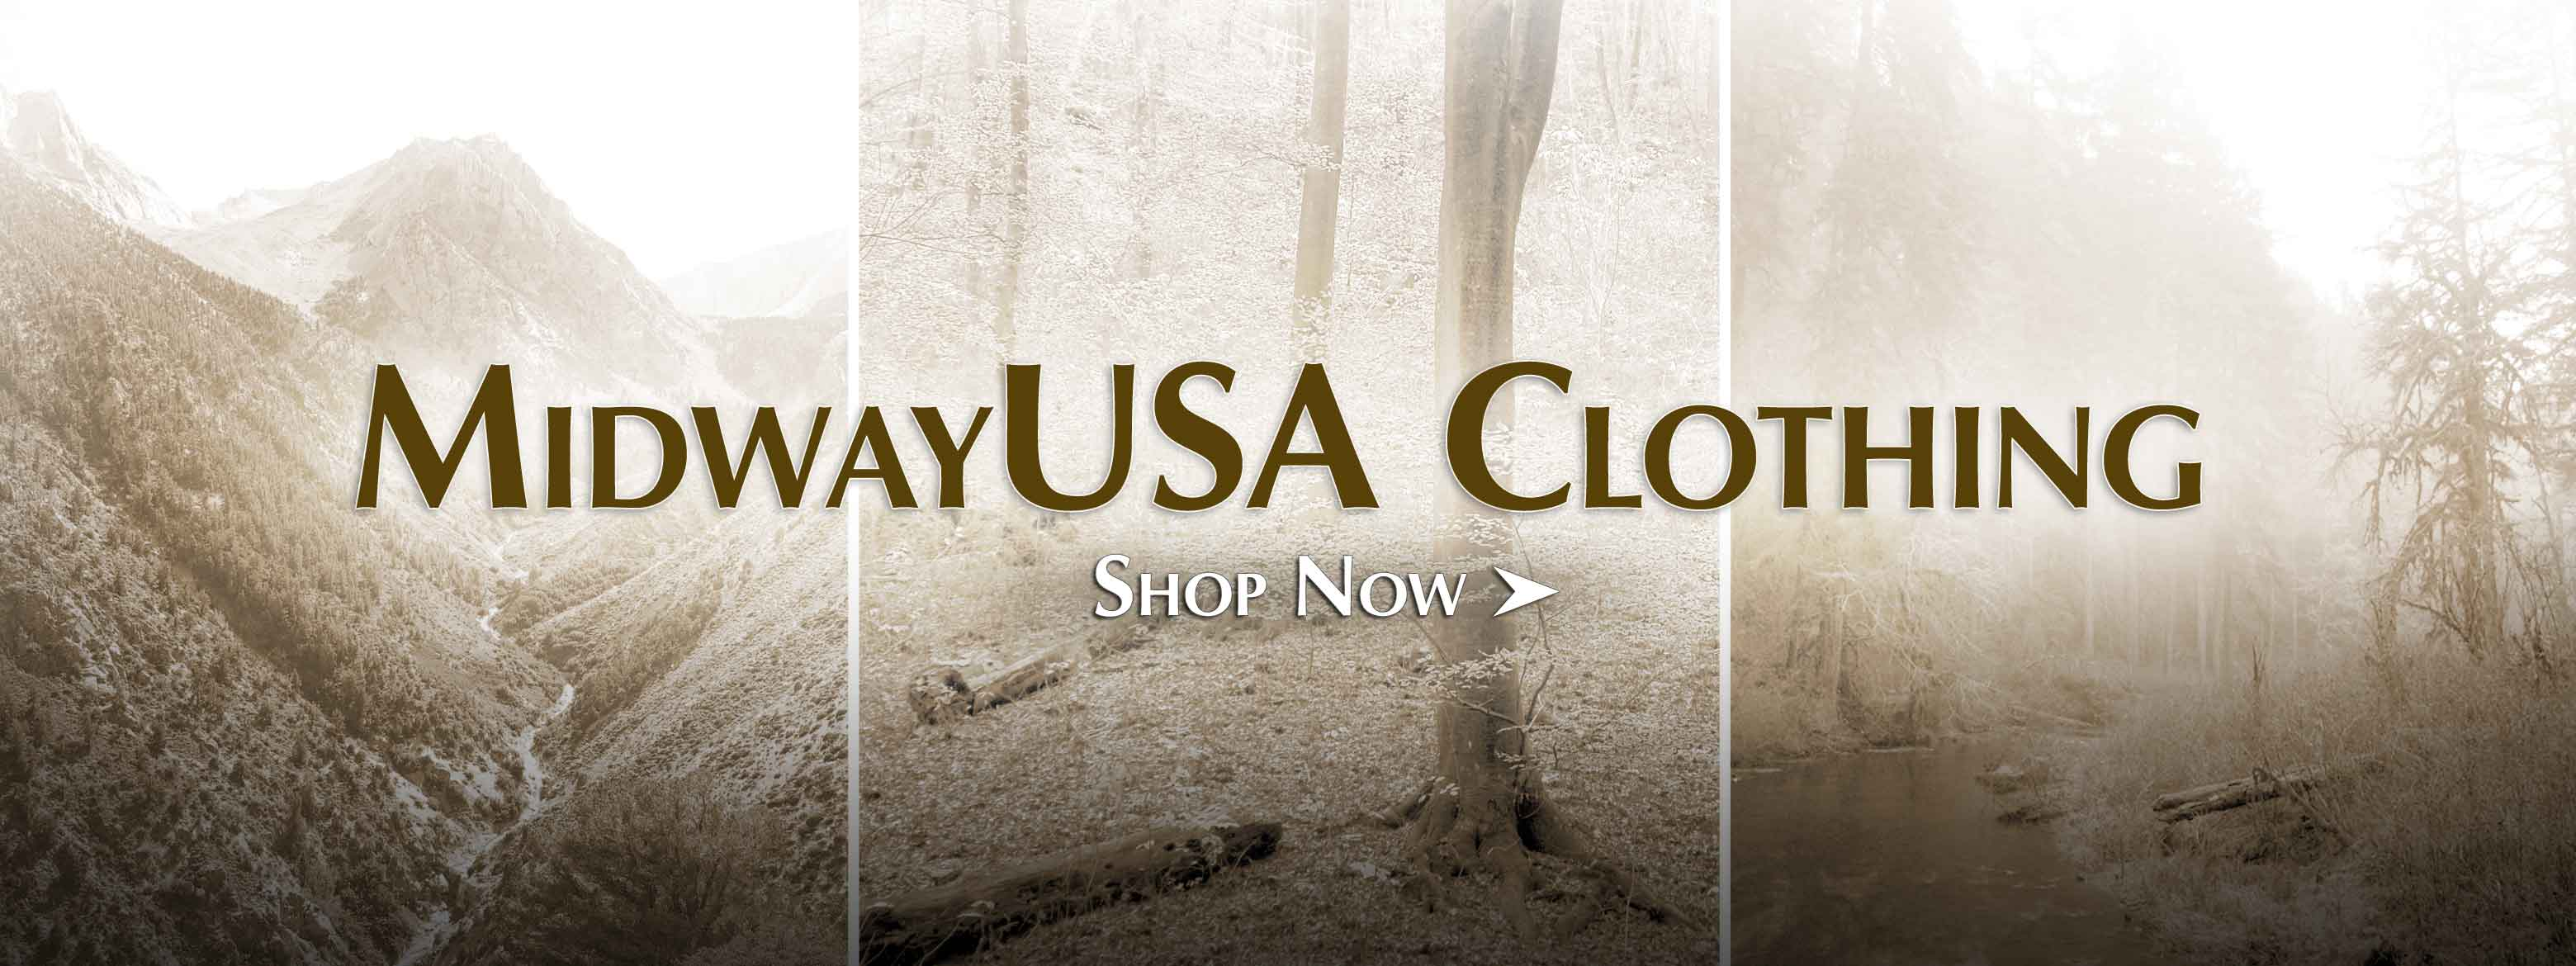 MidwayUSA Clothing